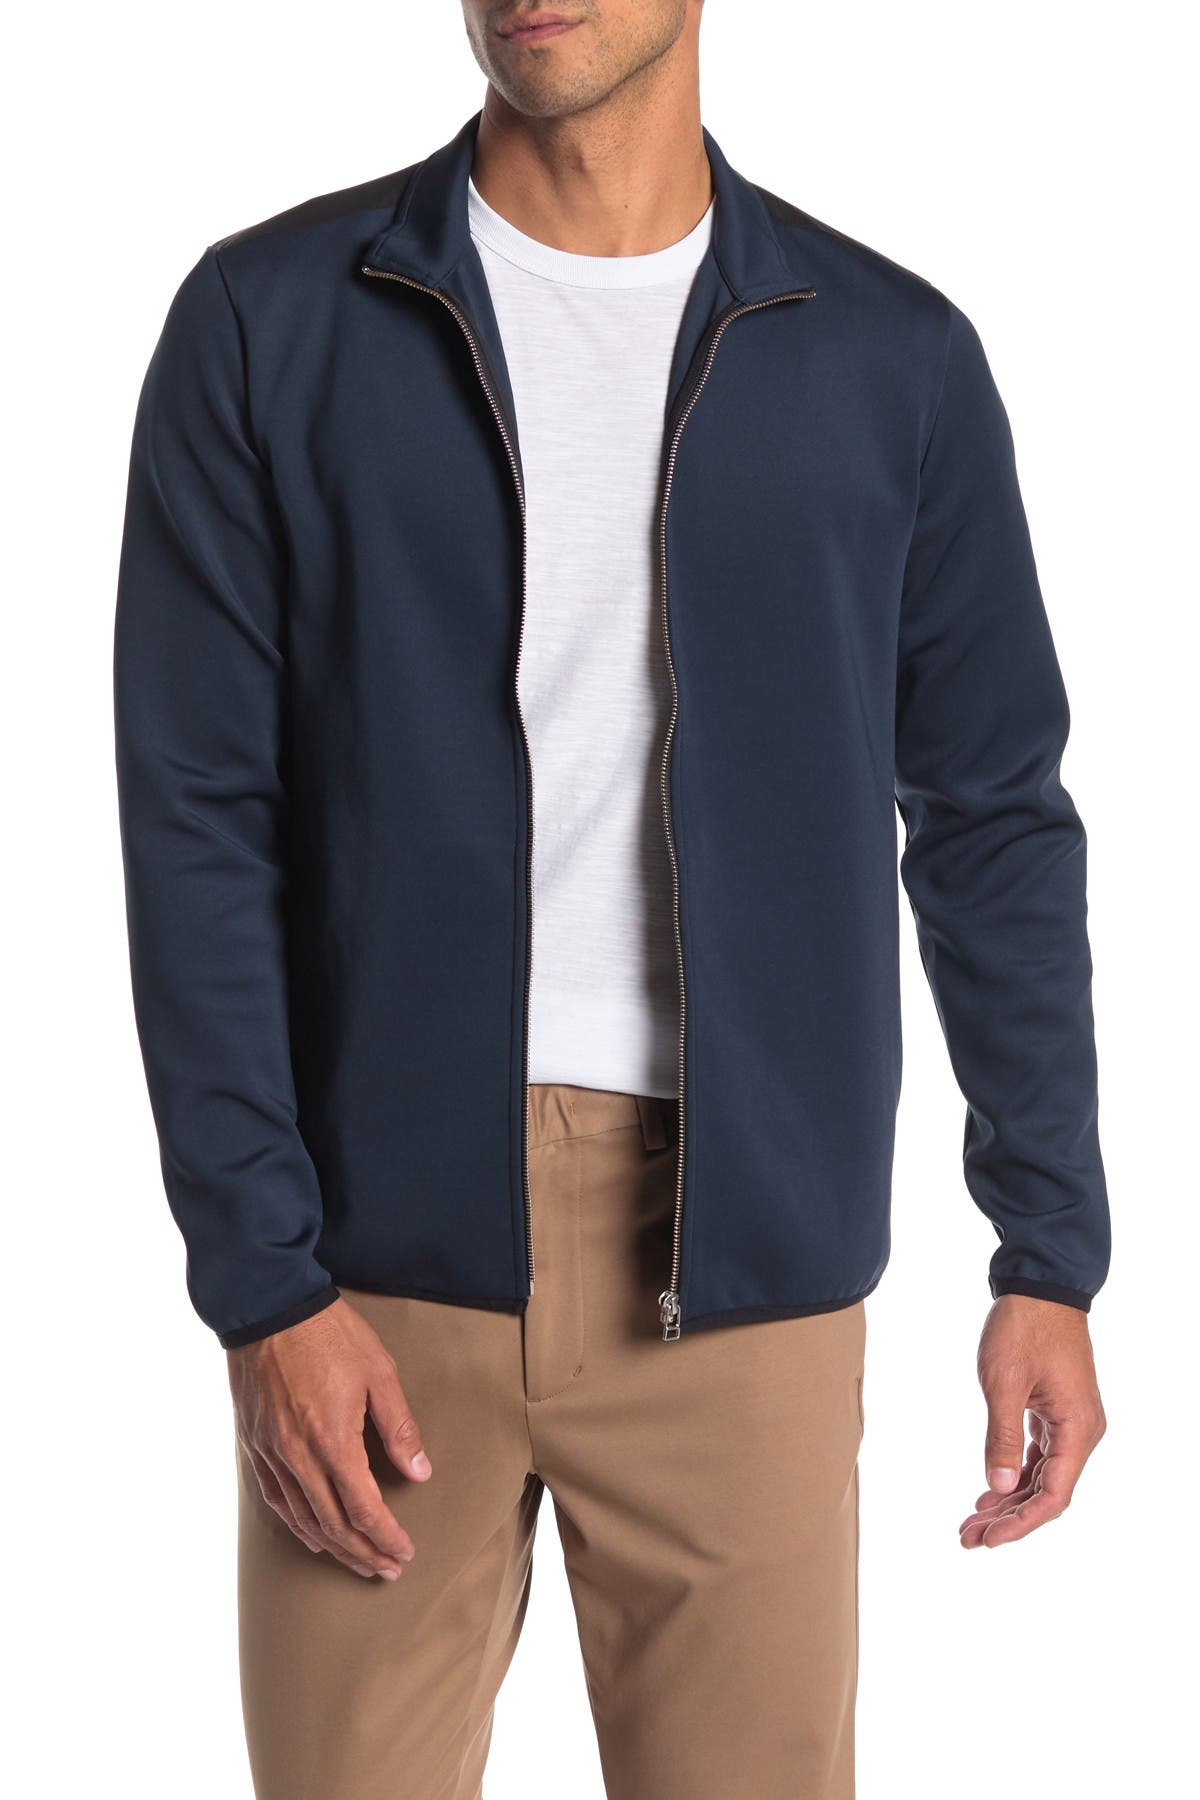 Image of Theory Rolenn Oascent Ponte Knit Zip Jacket